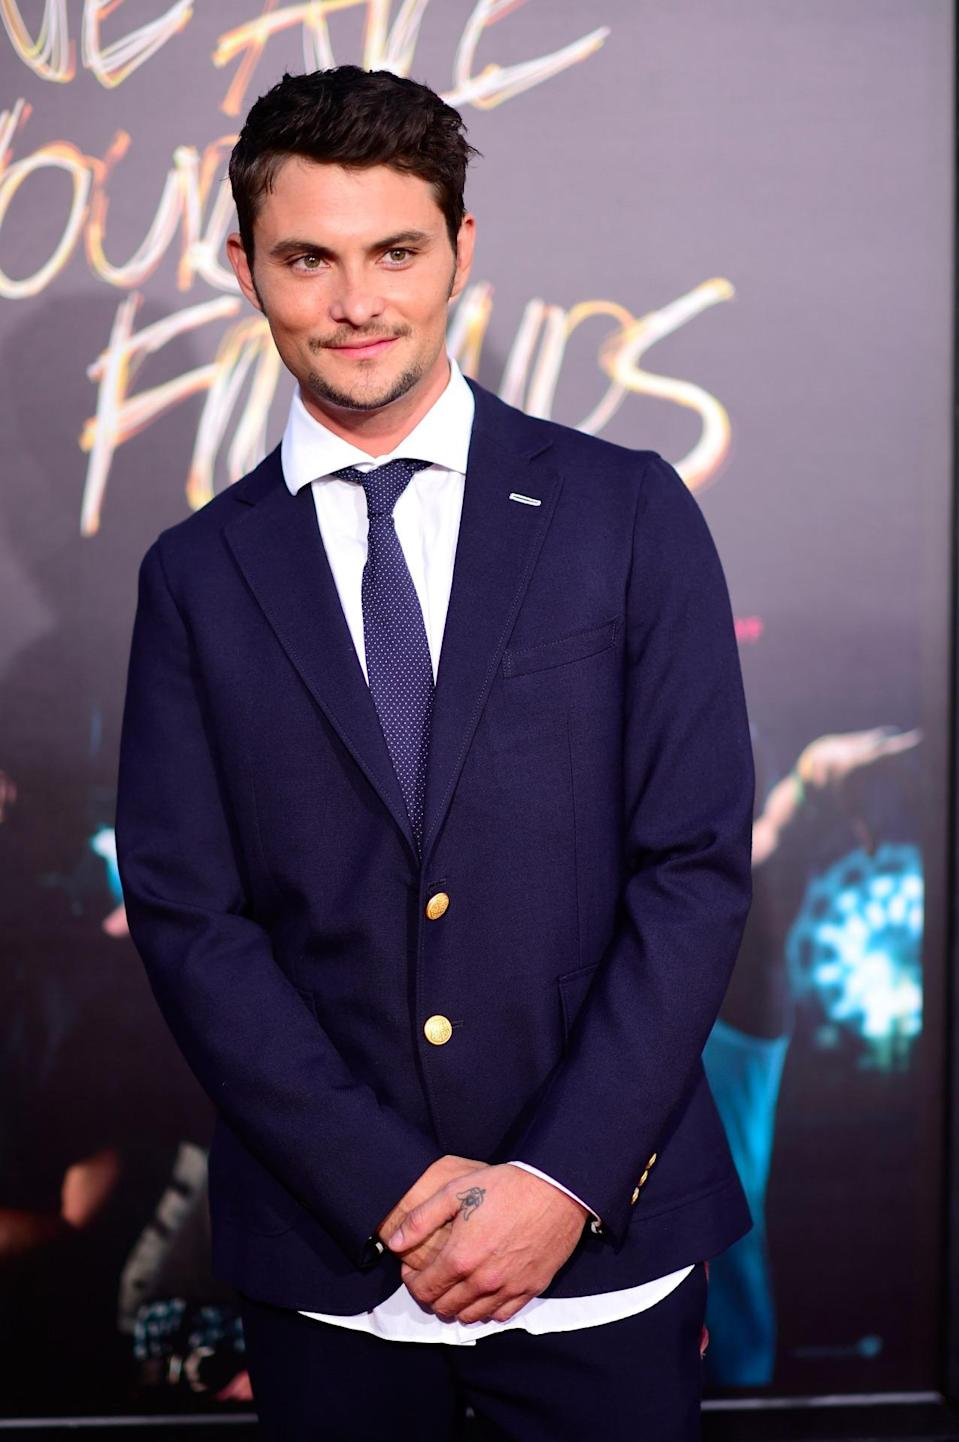 """HOLLYWOOD, CA - AUGUST 20: Actor Shiloh Fernandez arrives at the Premiere Of Warner Bros. Pictures' """"We Are Your Friends"""" at TCL Chinese Theatre on August 20, 2015 in Hollywood, California. (Photo by Frazer Harrison/Getty Images)"""